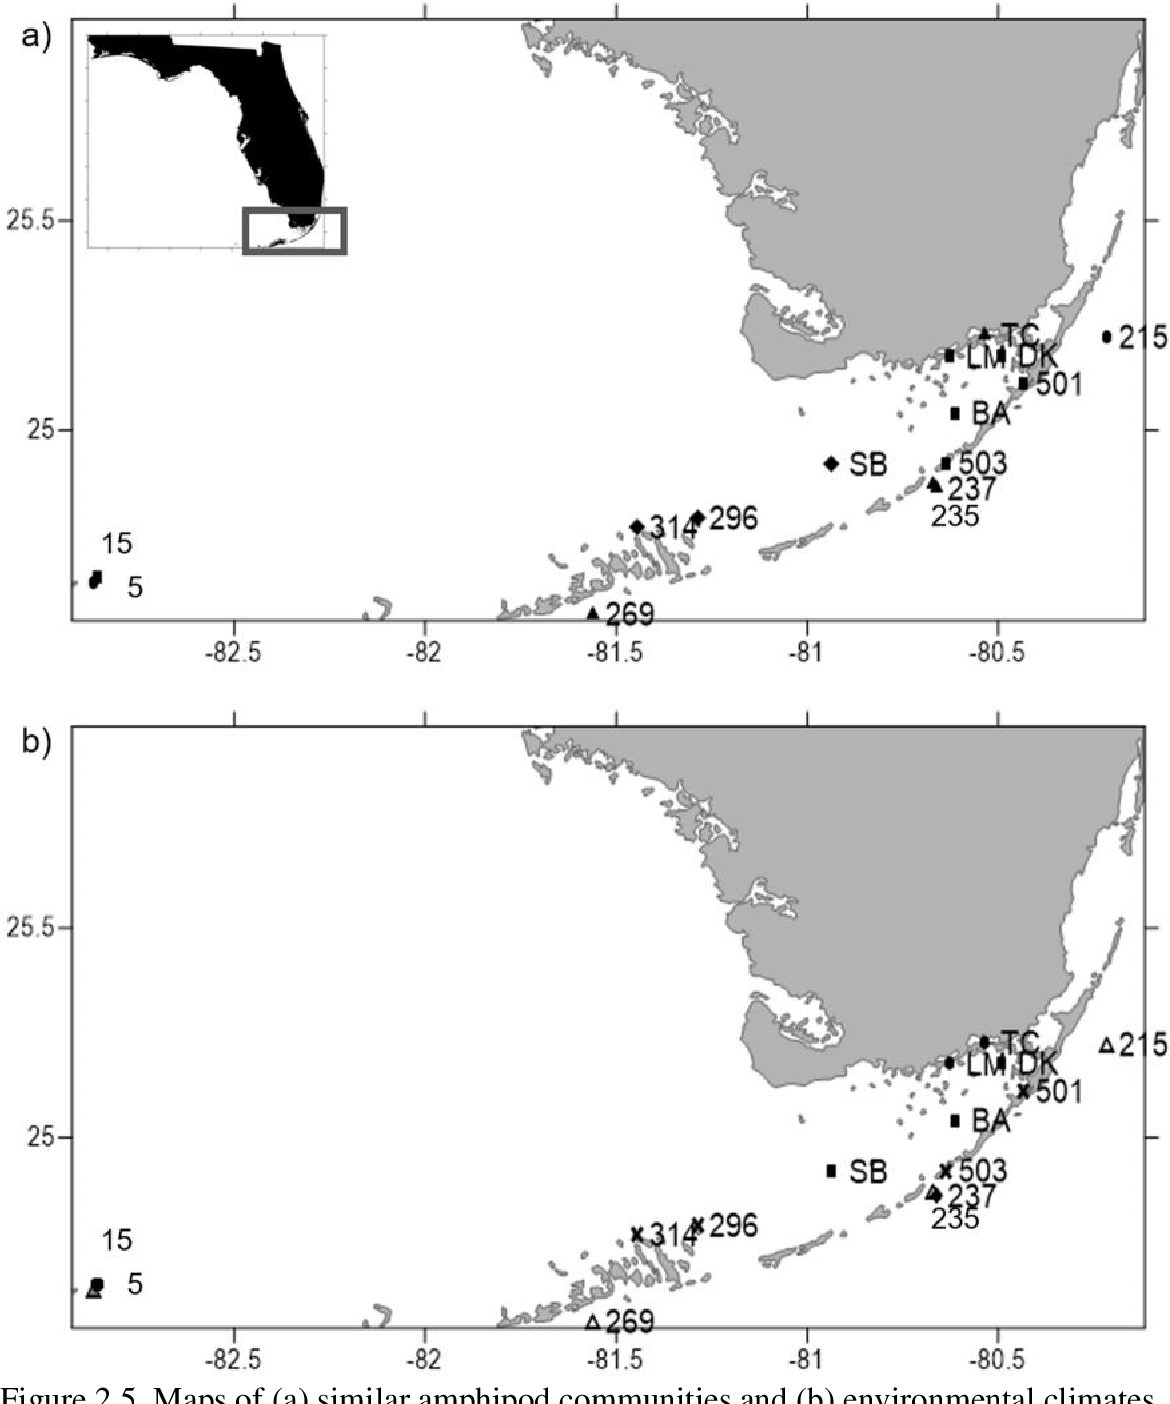 Figure 2.5. Maps of (a) similar amphipod communities and (b) environmental climates from cluster analyses across sites. Symbols used to identify sites within the same cluster.